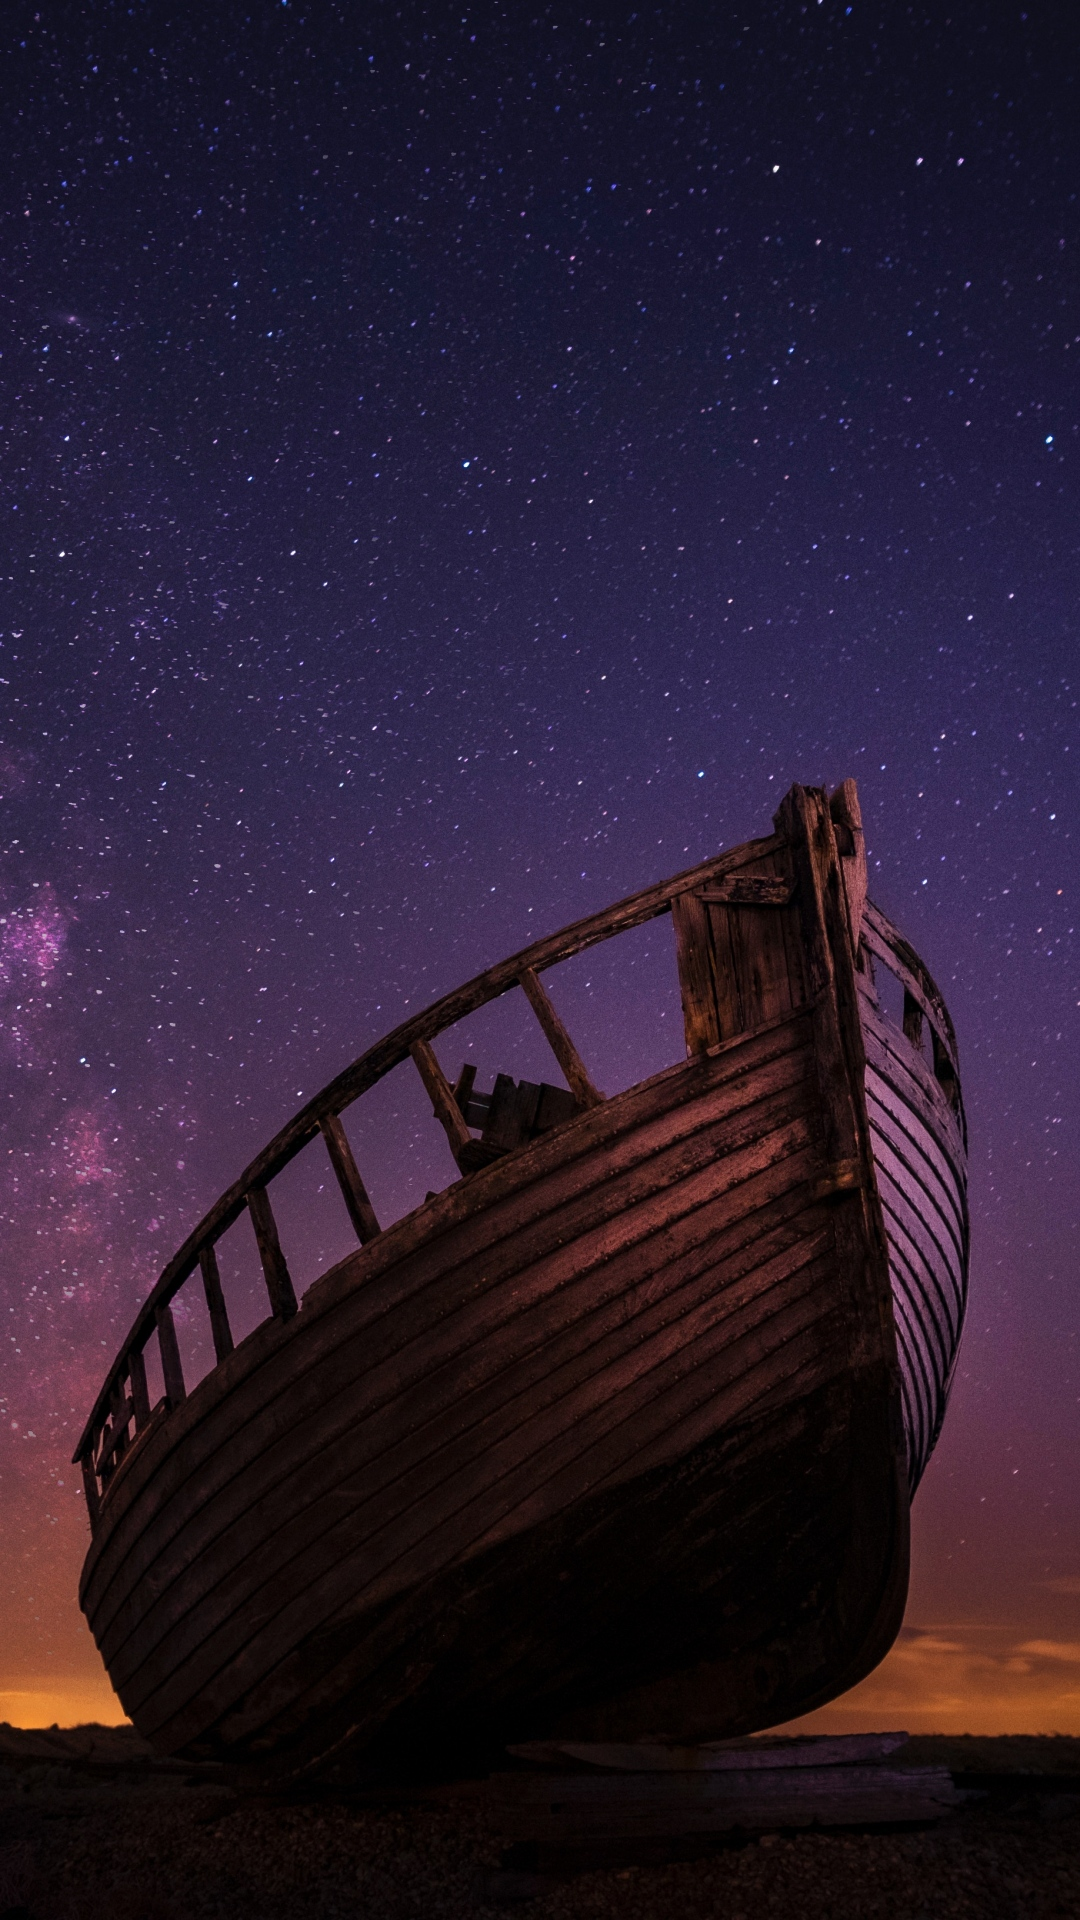 boat starry sky night 117225 1080x1920 Boat